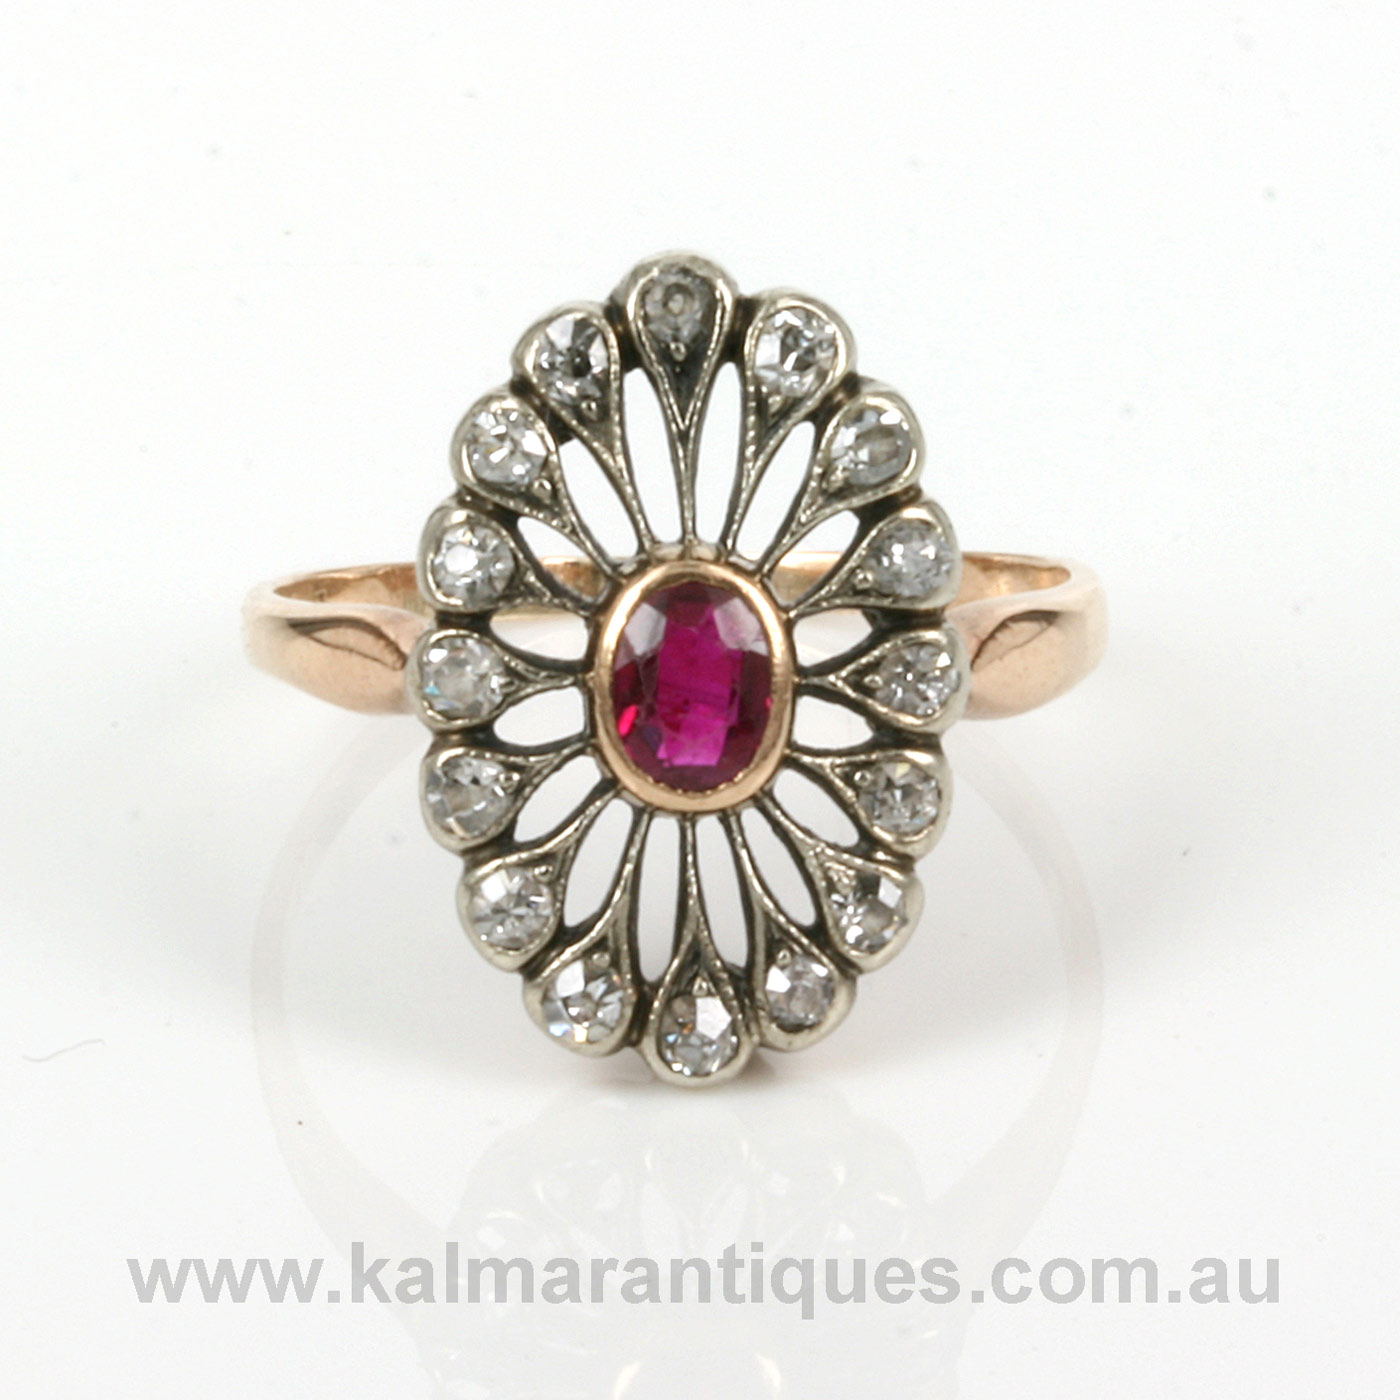 Buy Art Deco ruby and diamond ring made in Poland Sold Items Sold